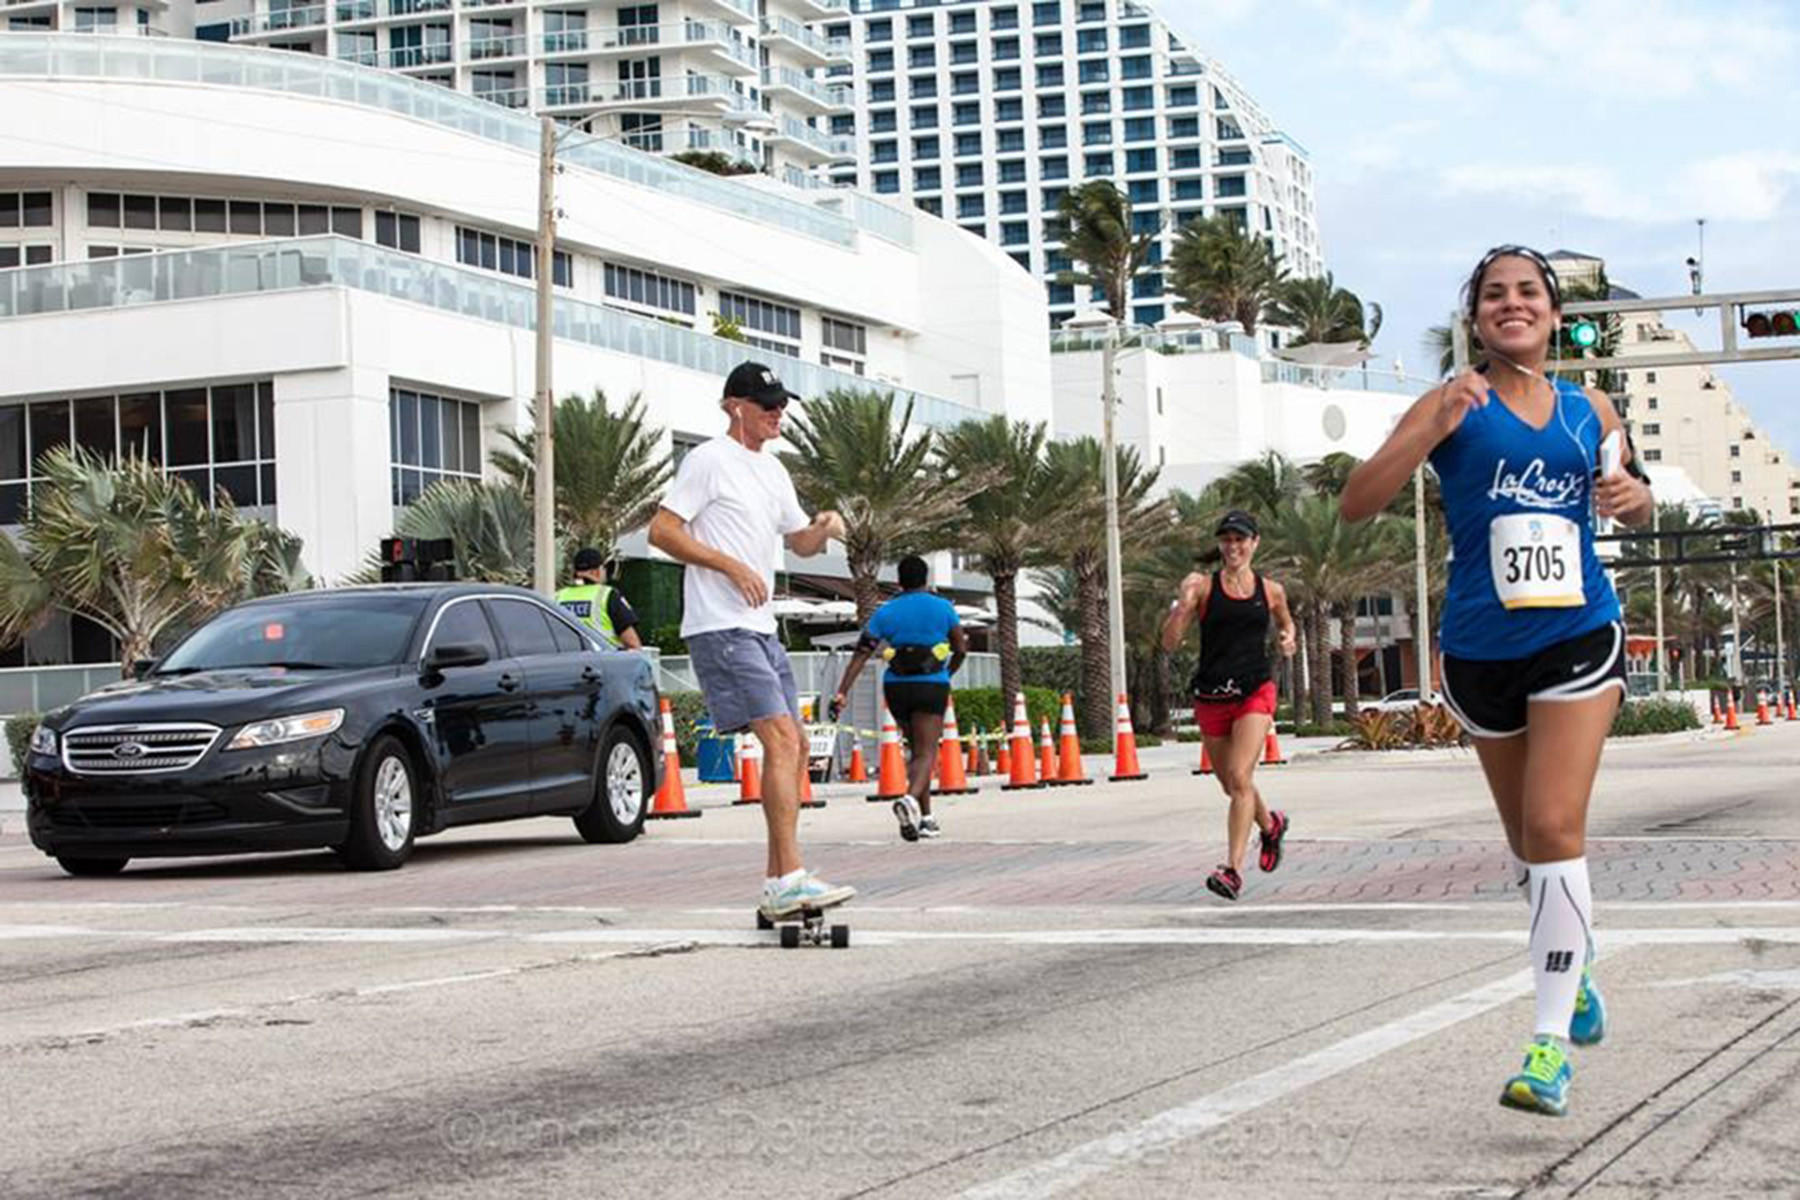 Tatiana Ortiz, right of Coral Springs, listens to nursing lectures while she runs. She is running the half marathon in the Miami Marathon Feb. 2. Handout photo provided by: Indira Dejtiar Photography